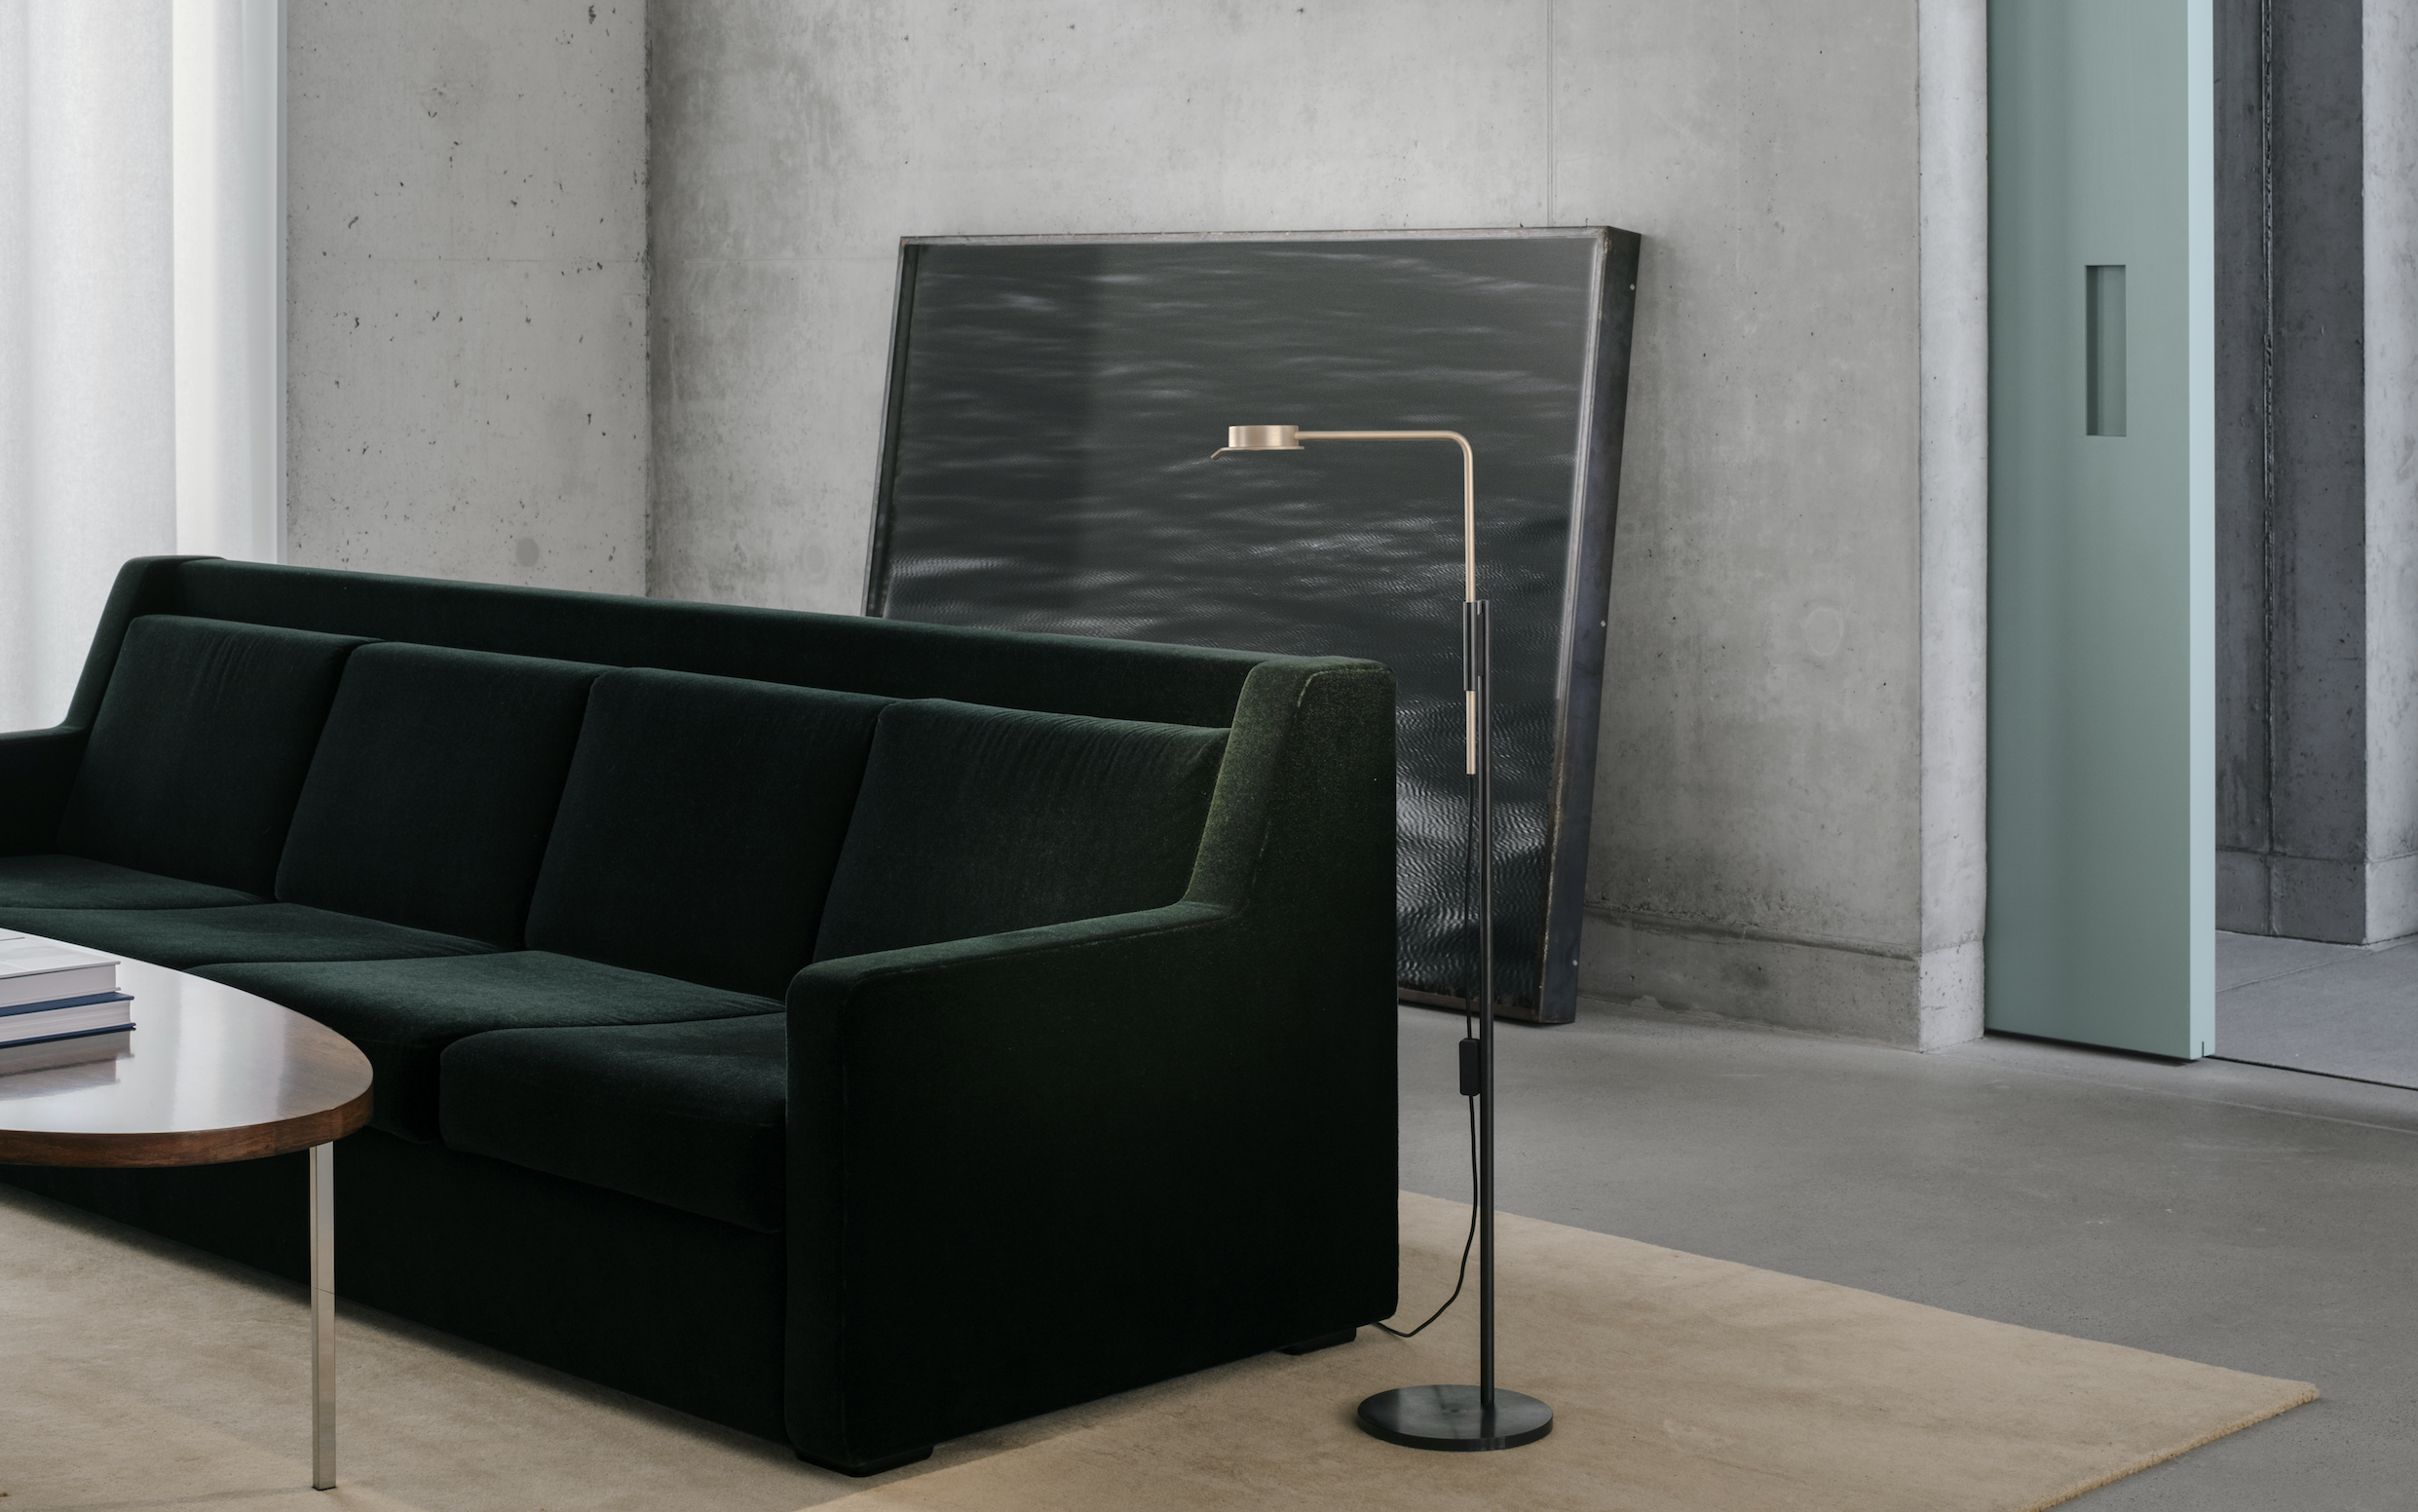 Wastberg Chipperfield W102 Lighting Stockholm Design Week 2019 Rory Robertson Stylist.png